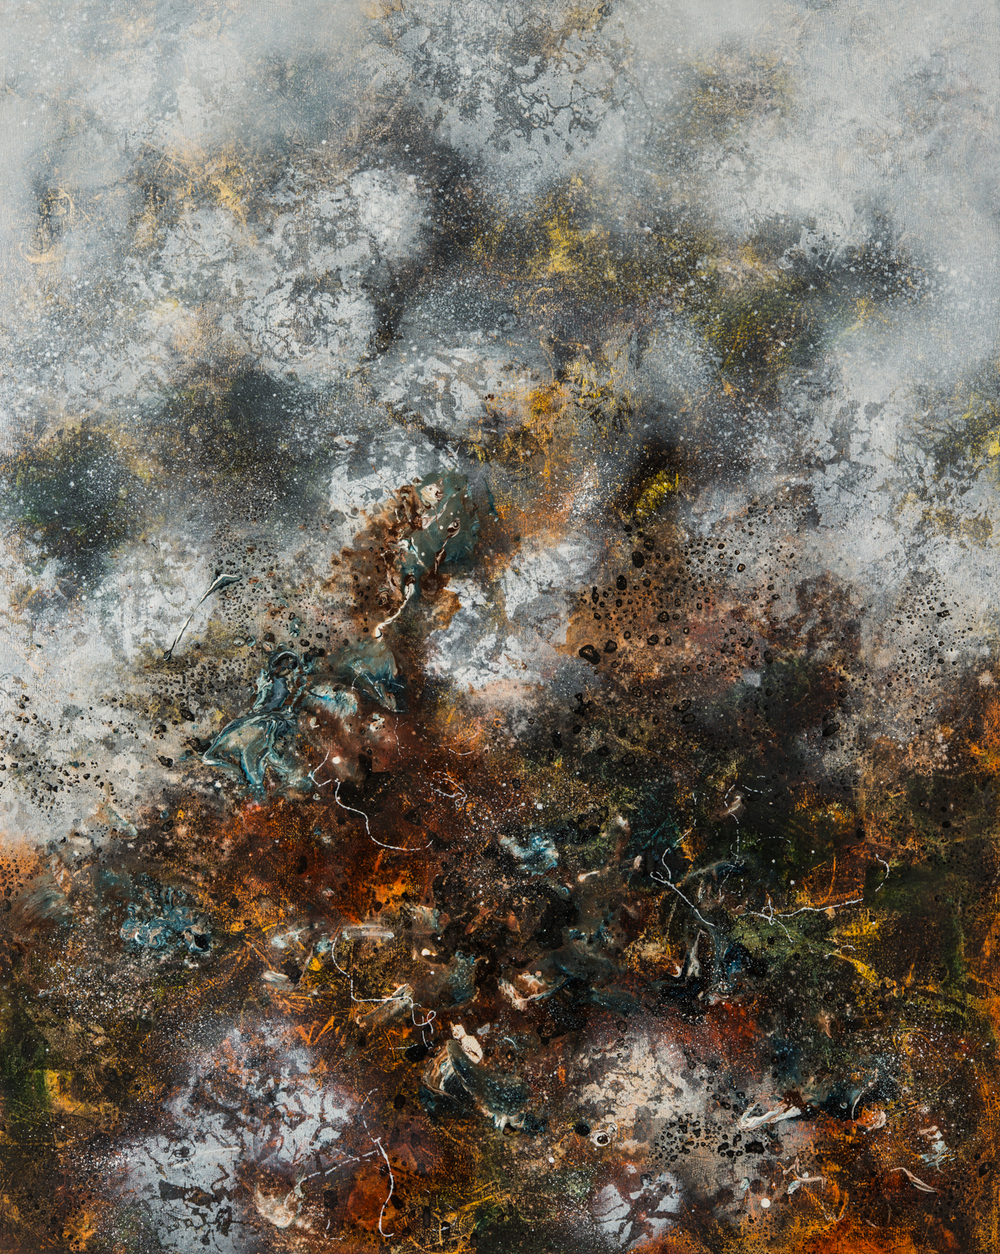 Eruption, oil on canvas, 127 x 102 cm